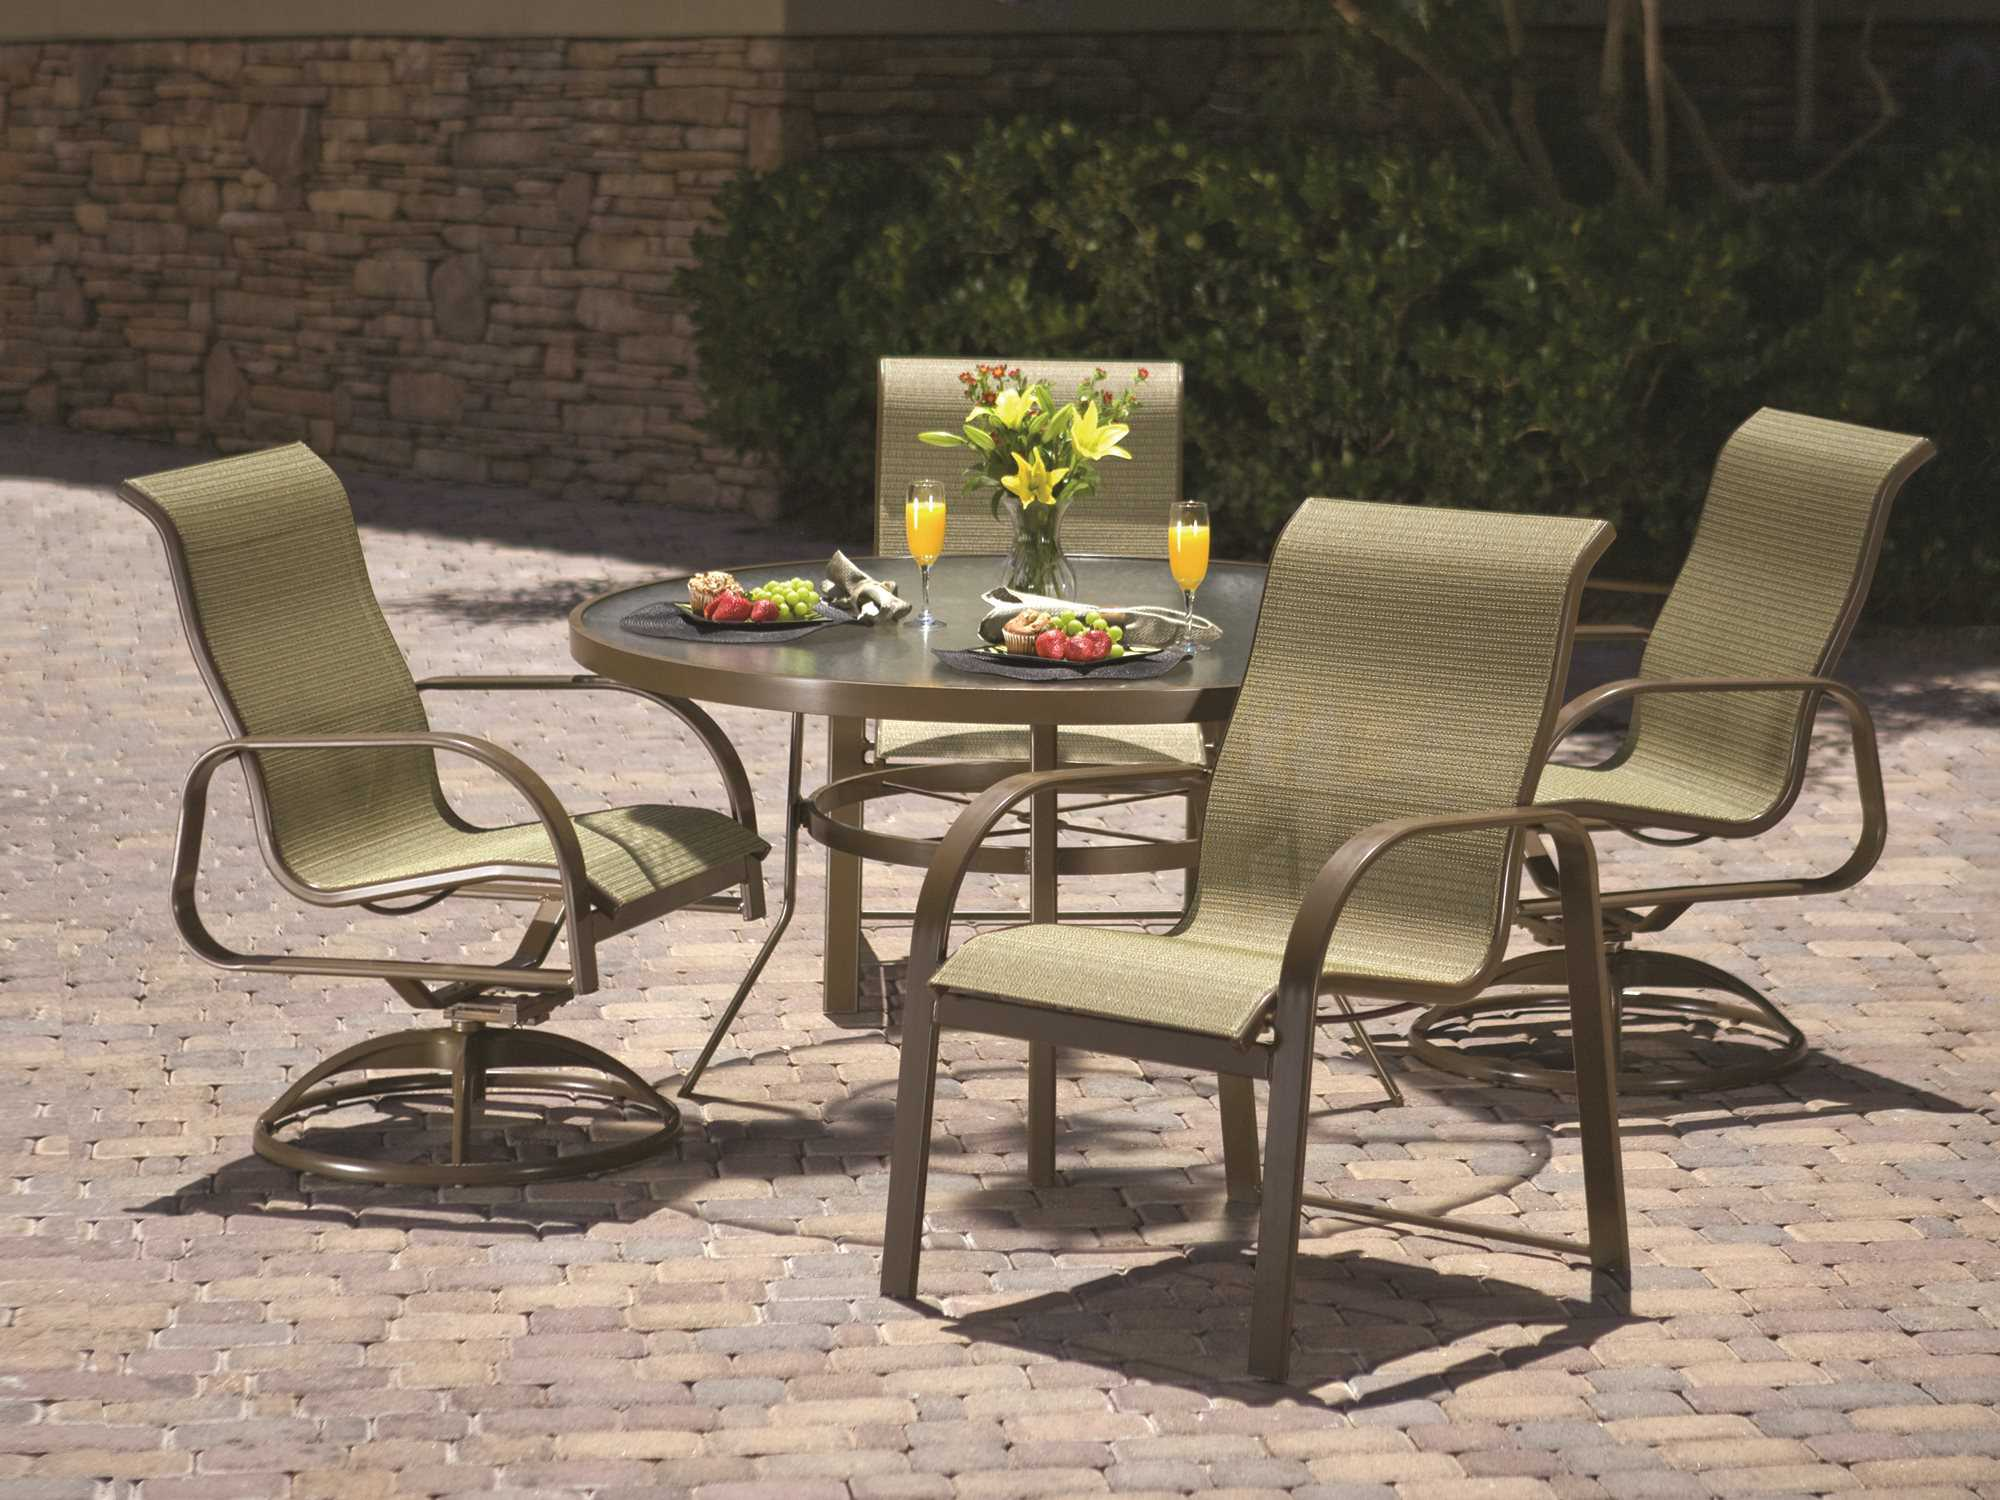 Samsonite Patio Furniture Touch Up Paint